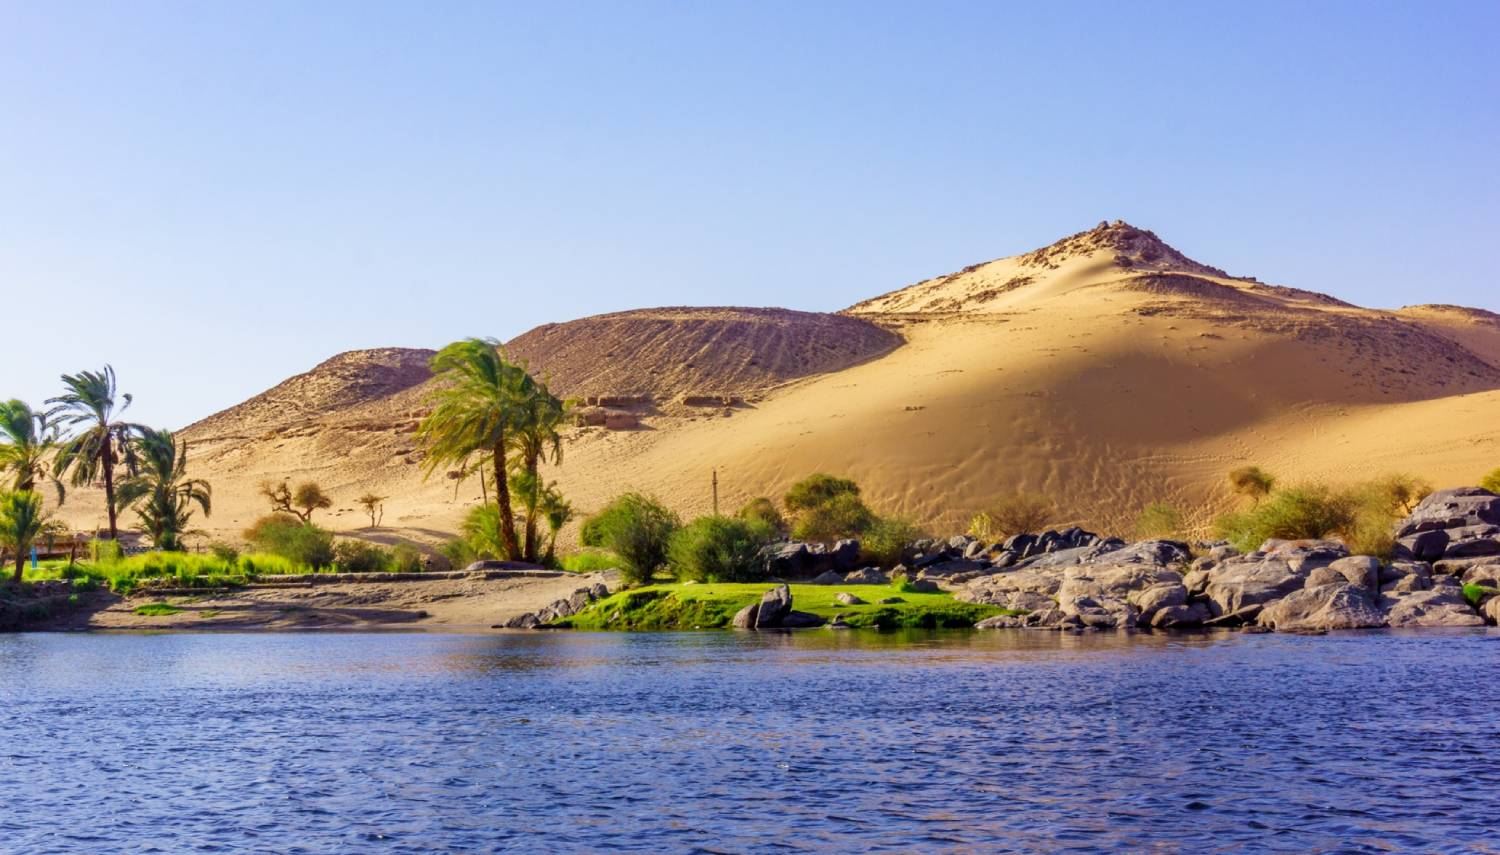 Nile River - Things To Do In Egypt